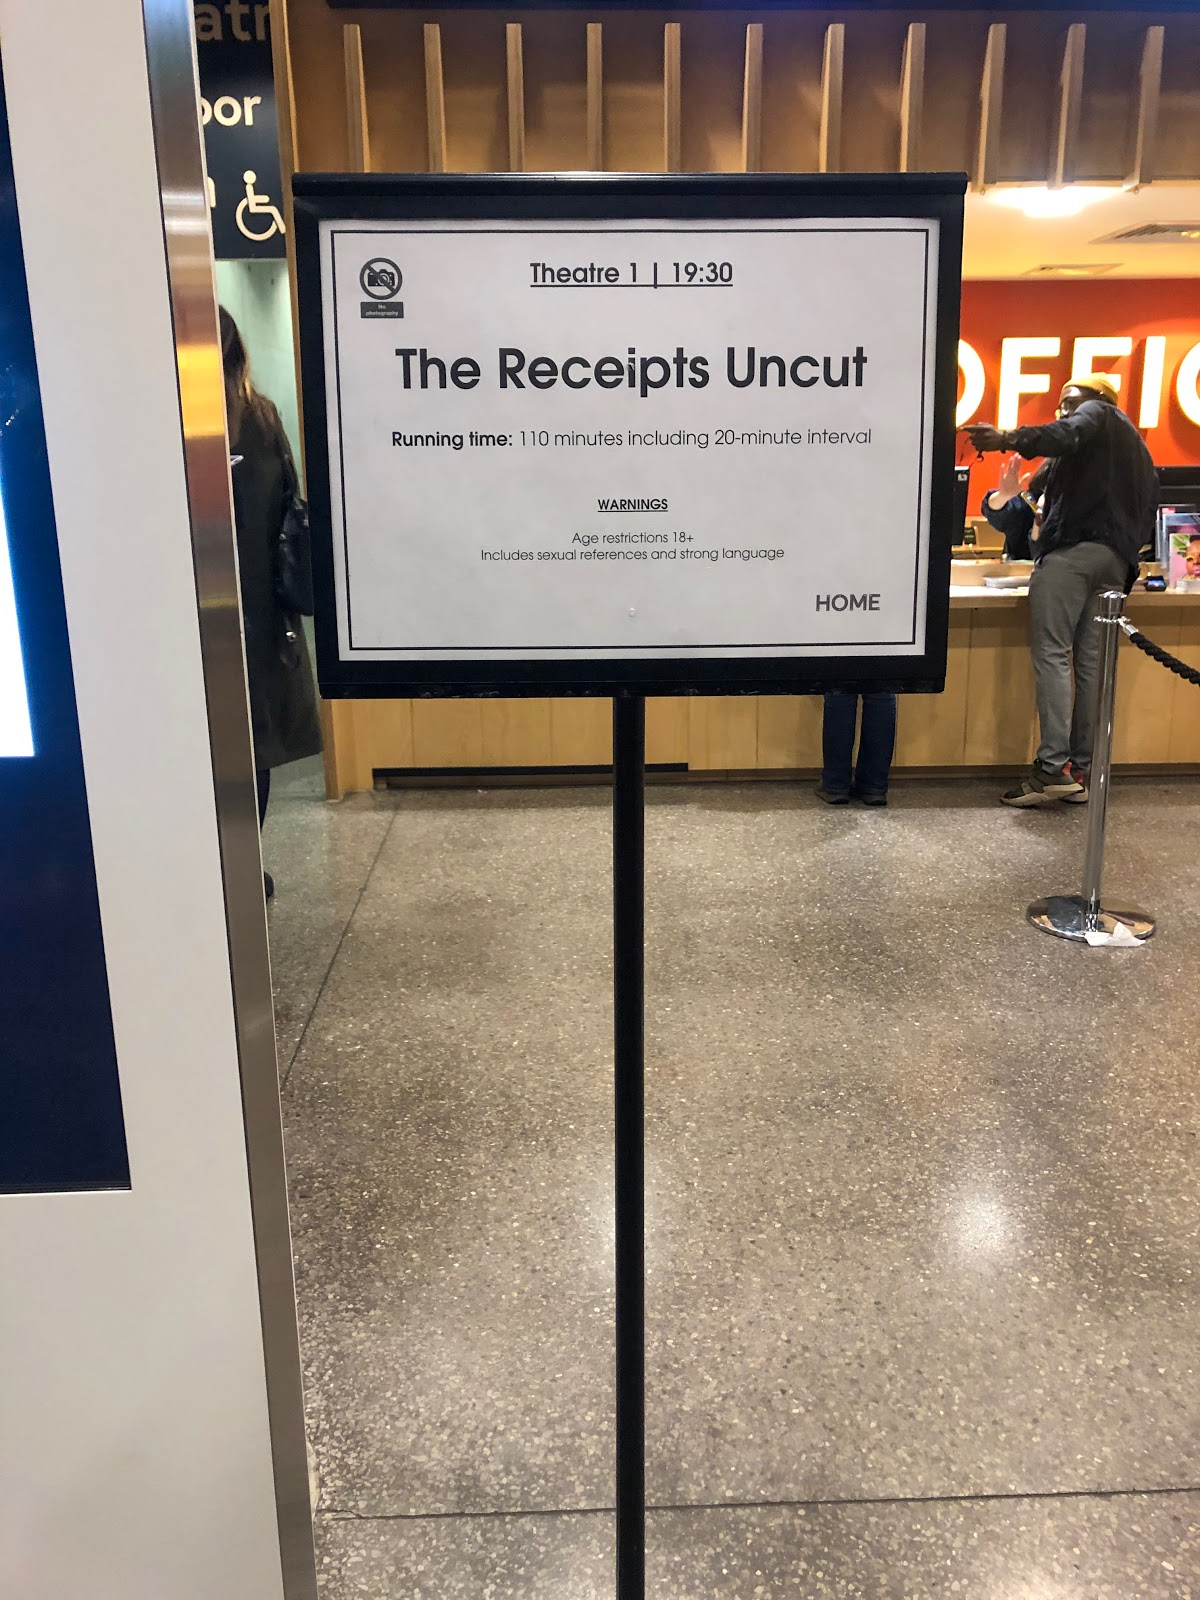 A sign for the start of the queue to collect tickets for The Reciepts Podcast Live